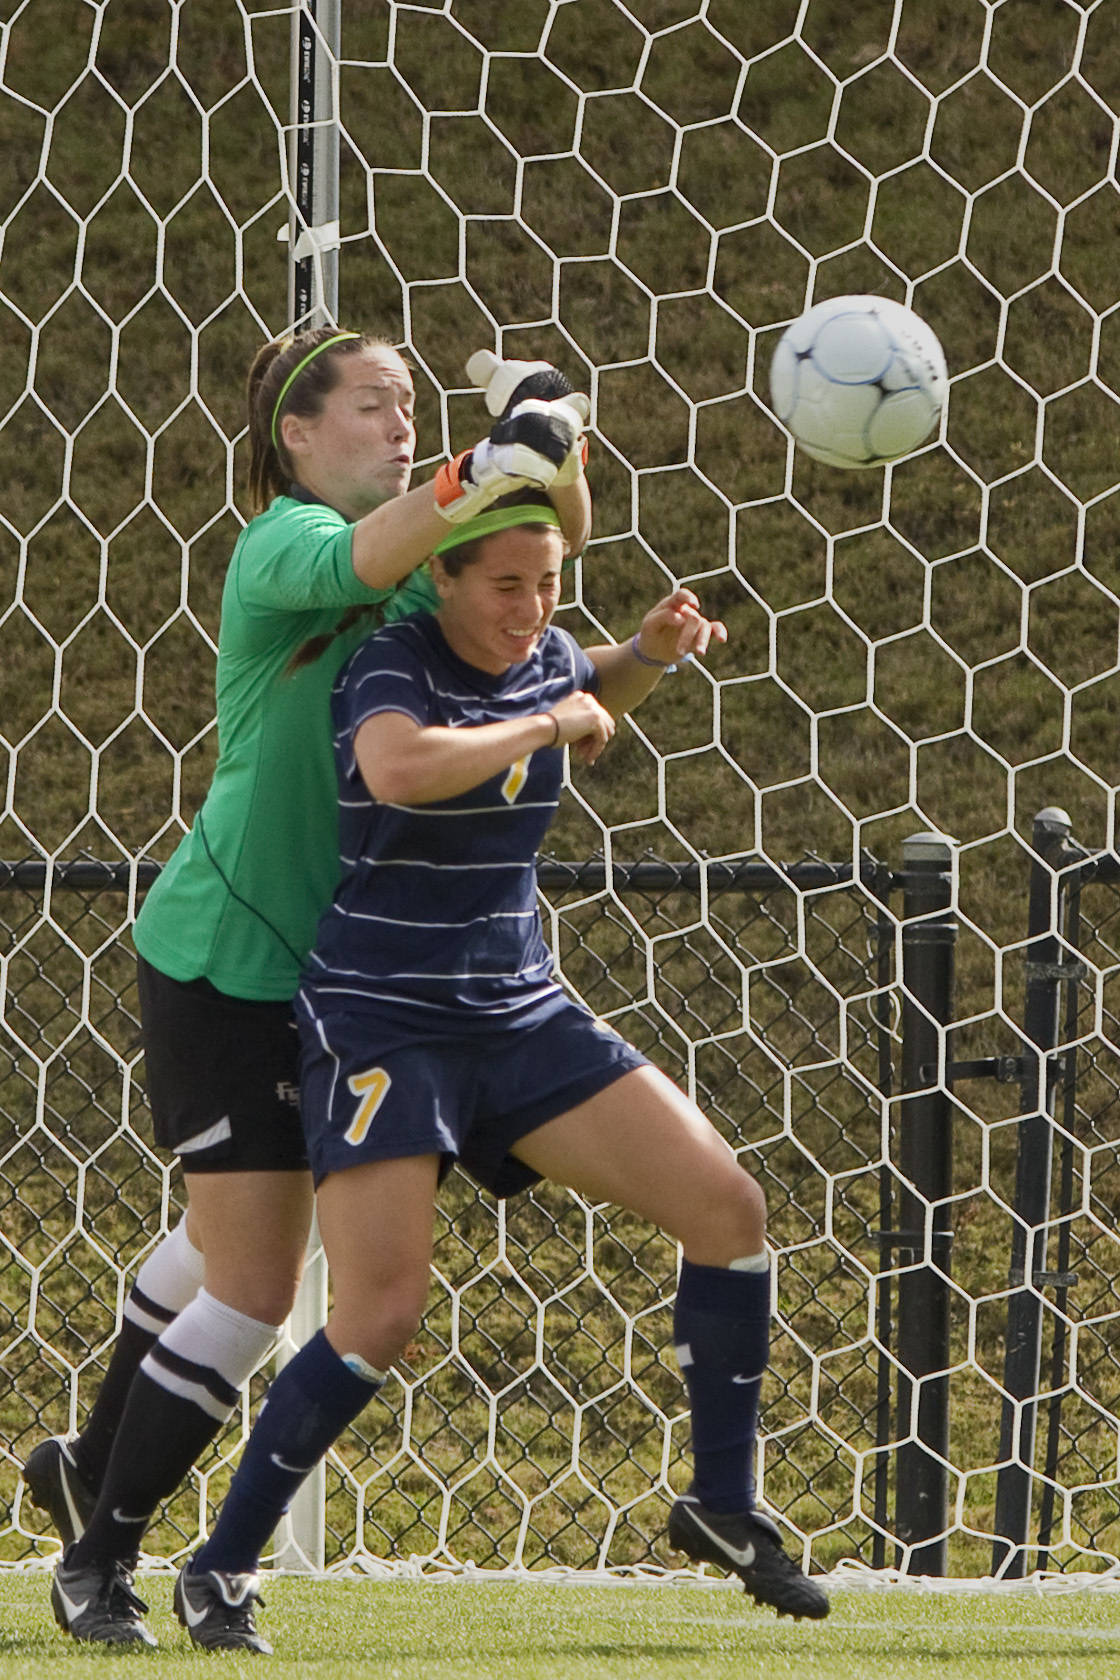 FSU's keeper reaches over a Marquette offender to make a save.